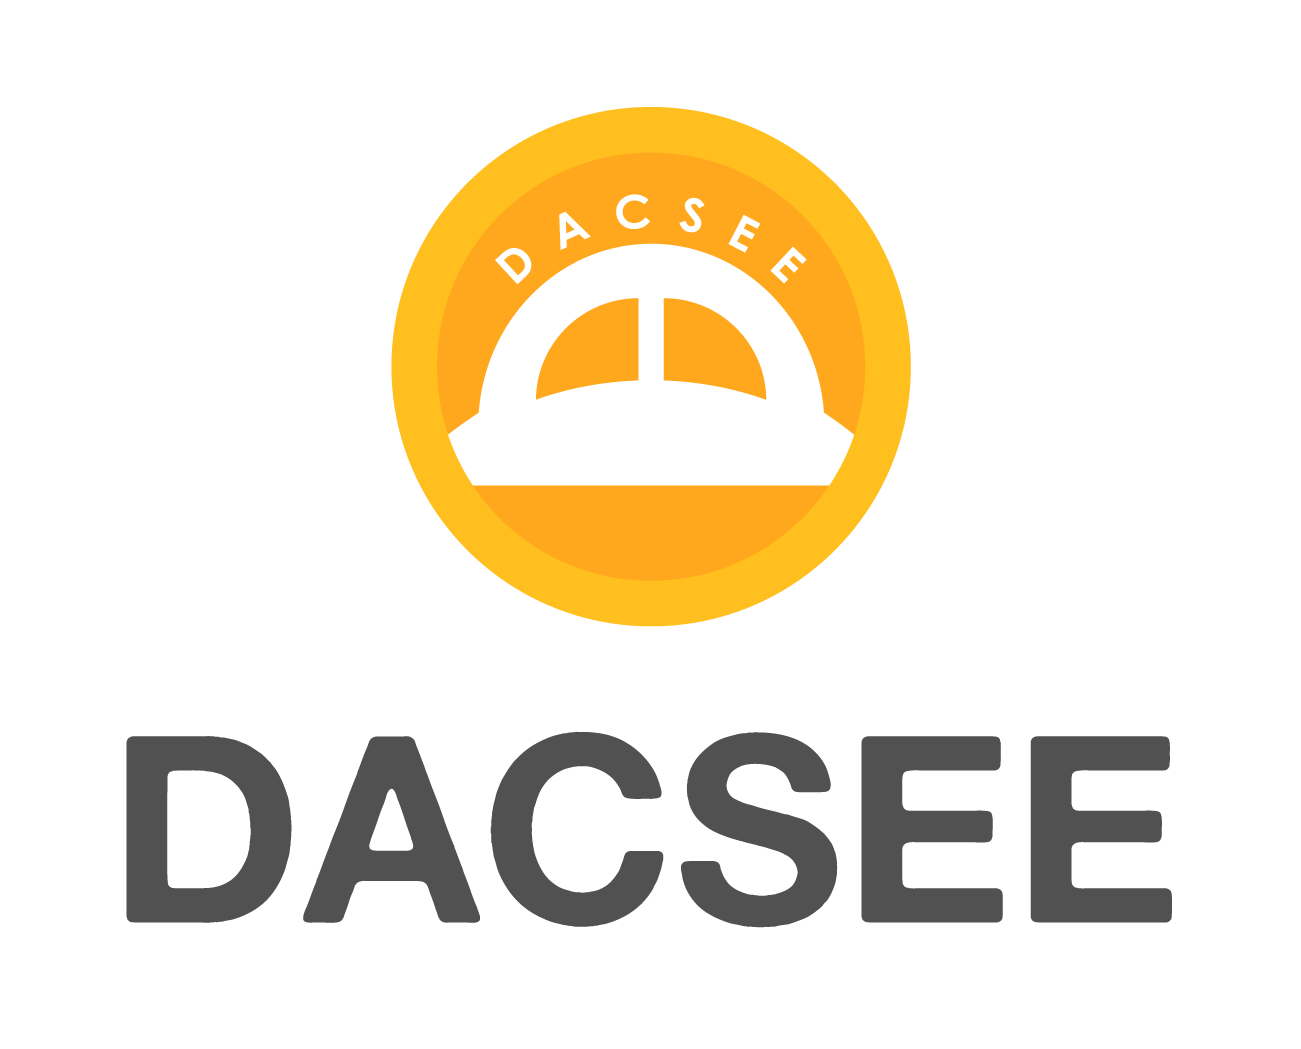 DACSEE Update